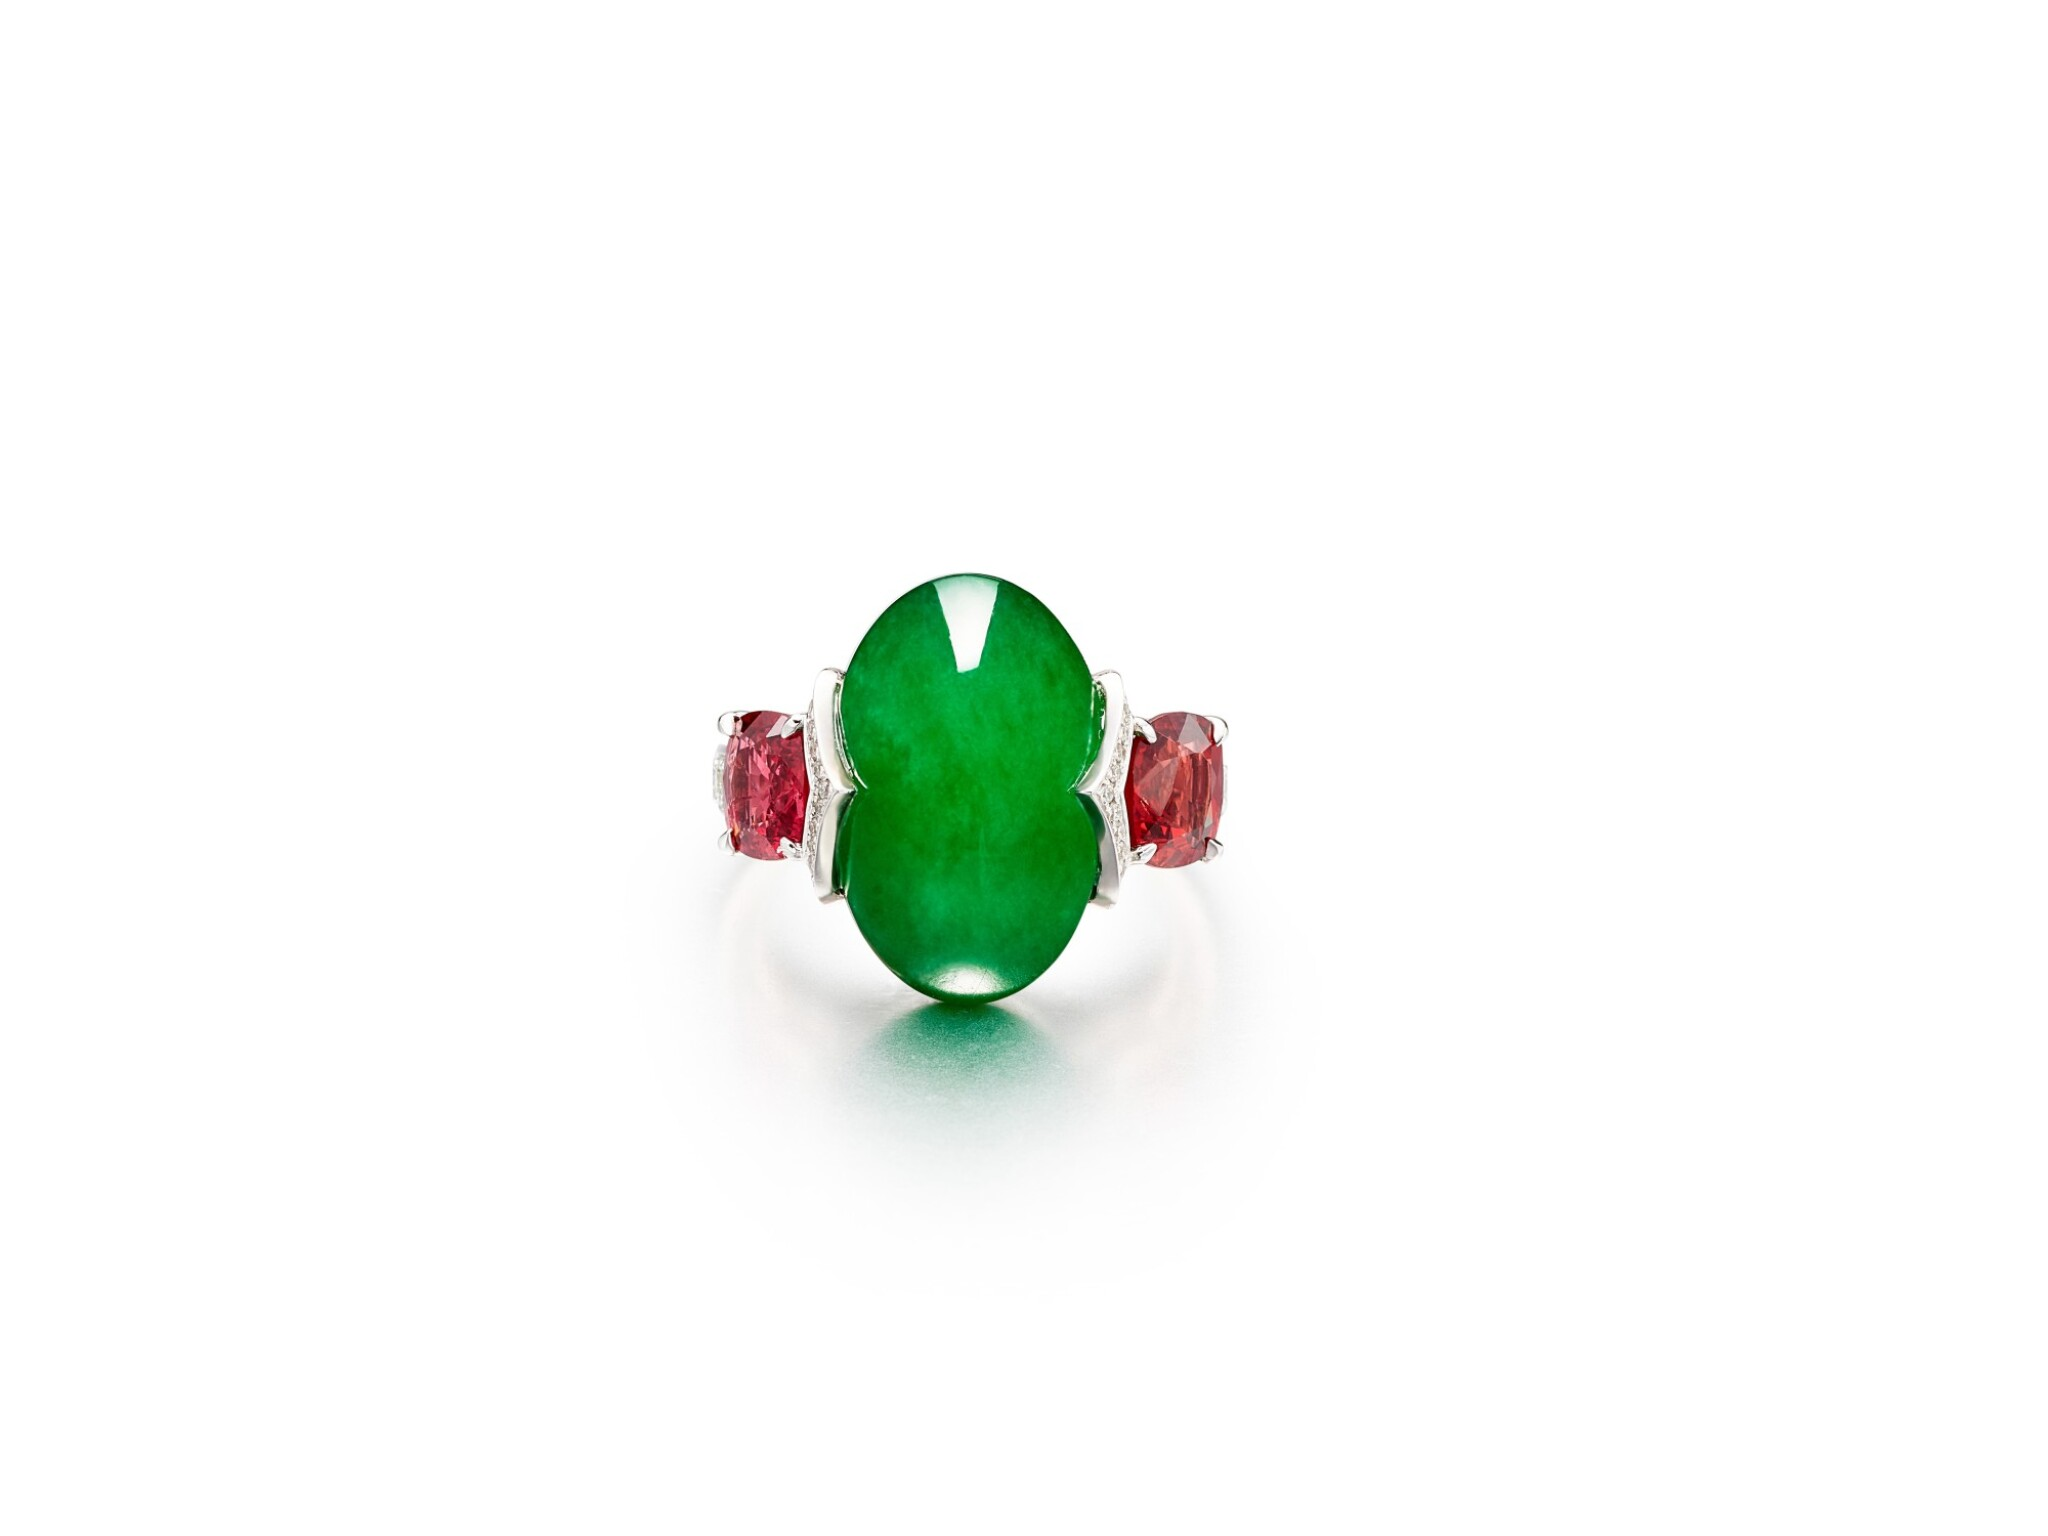 View full screen - View 1 of Lot 1733. Jadeite, Spinel and Diamond Ring   天然翡翠 配 尖晶石 及 鑽石 戒指.